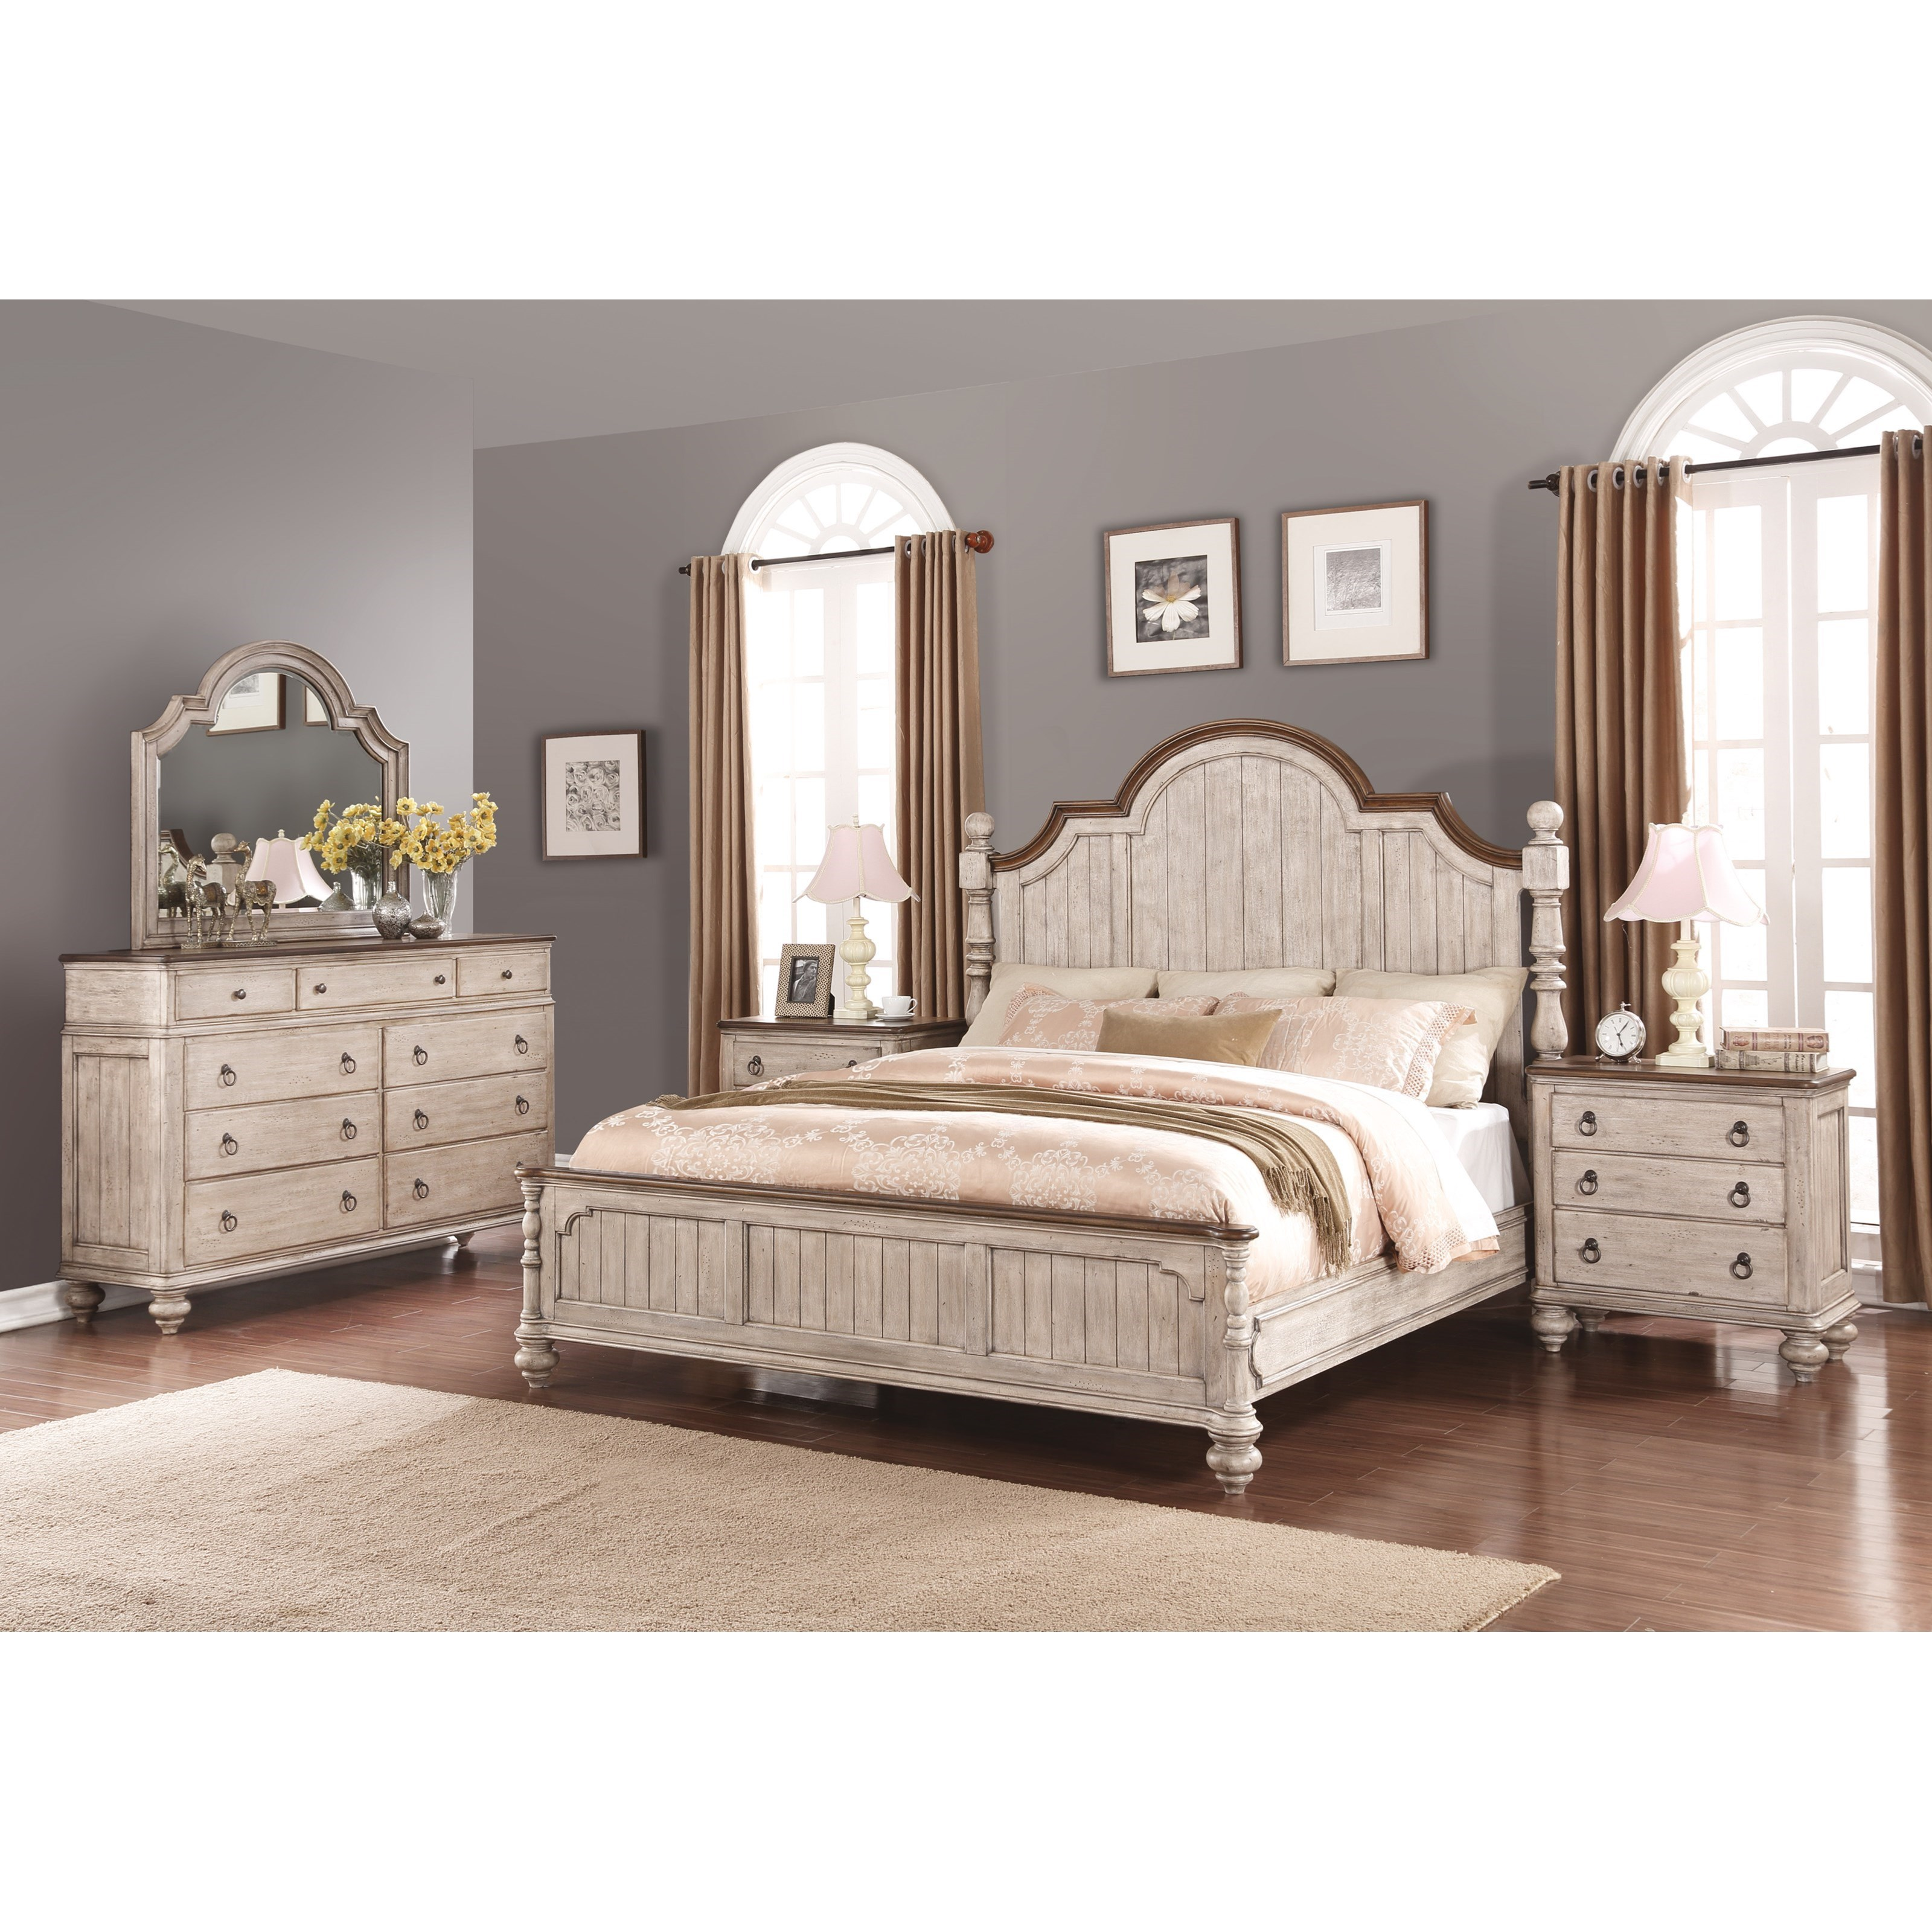 Plymouth Cal King Bedroom Group by Flexsteel Wynwood Collection at Steger's Furniture